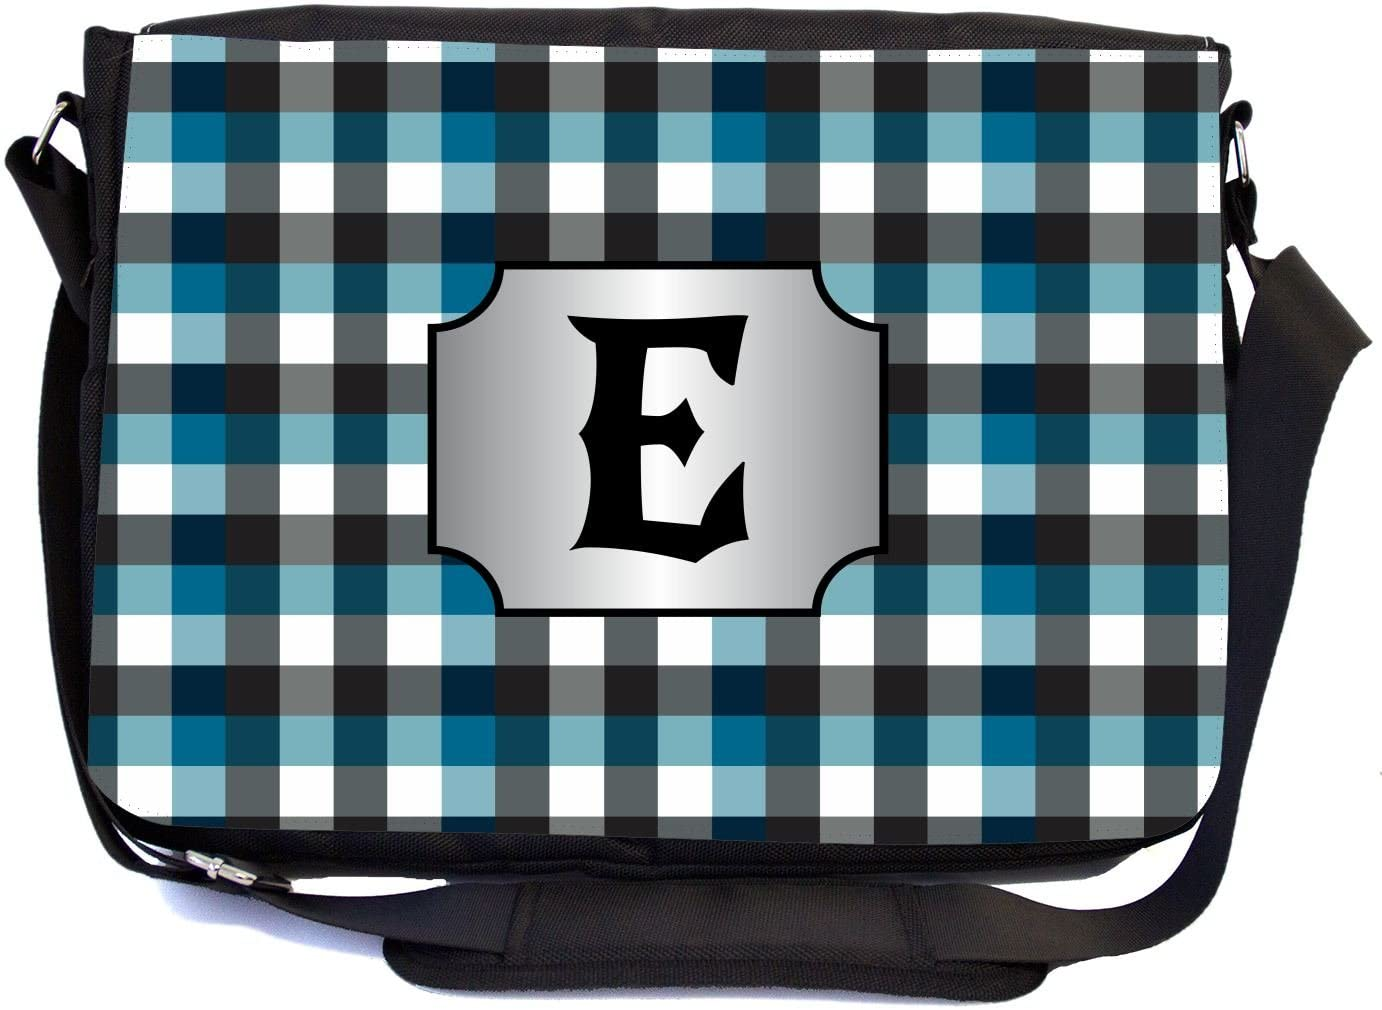 Rikki Knight LetterE Initial Blue Black Grey Plaid Monogrammed Design Messenger School Bag (mbcp-cond45983)